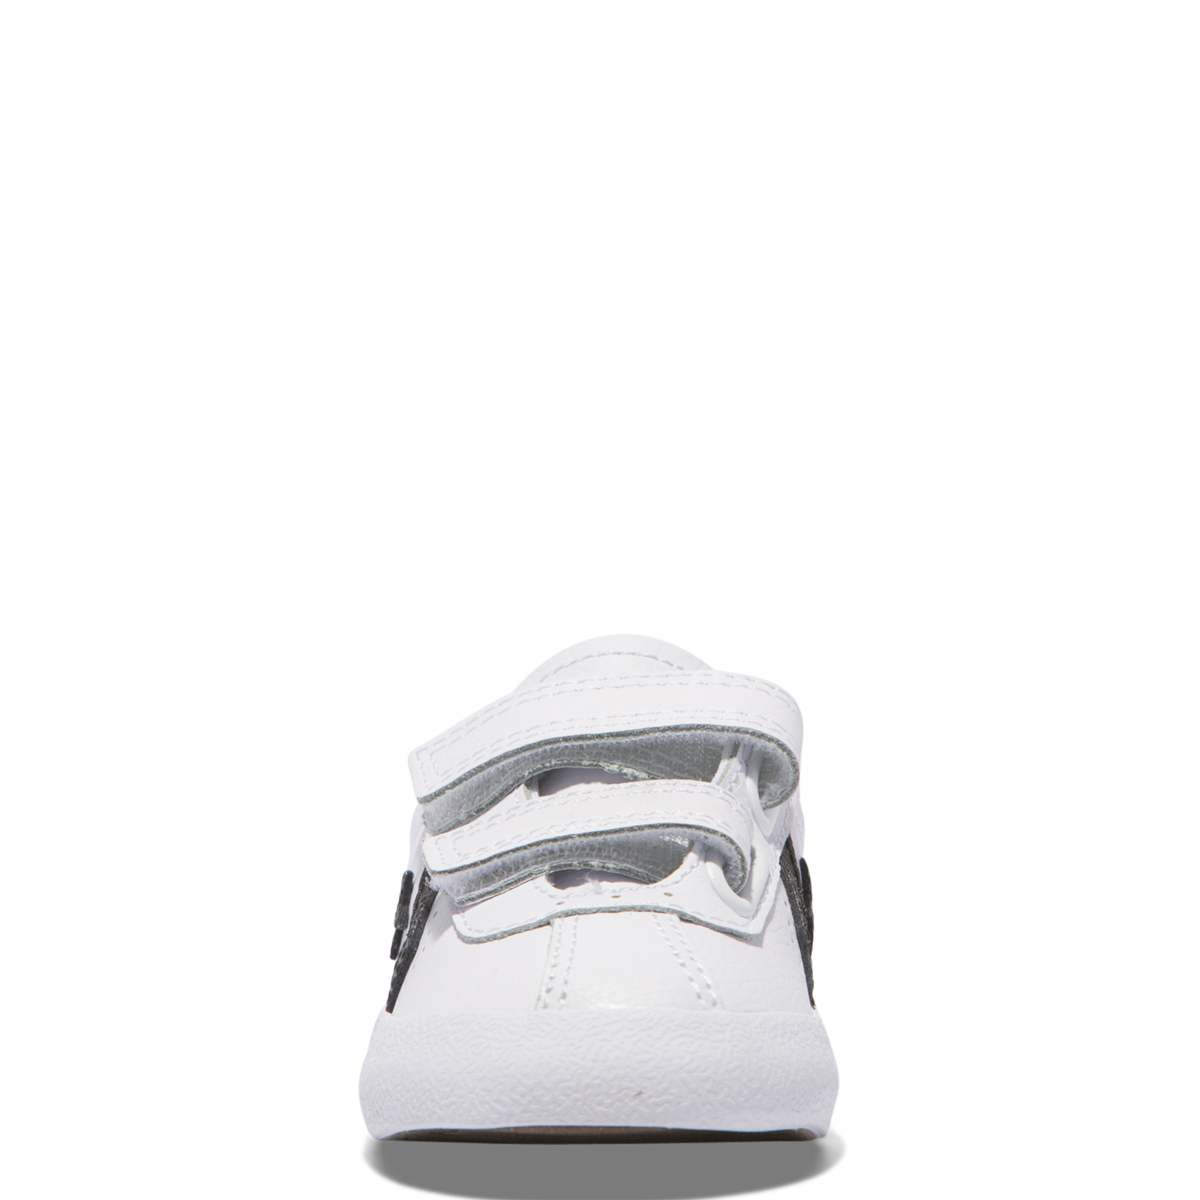 ee5ec7fa7dd178 Converse Breakpoint 2V Leather Toddler Low Top White 758202C ...